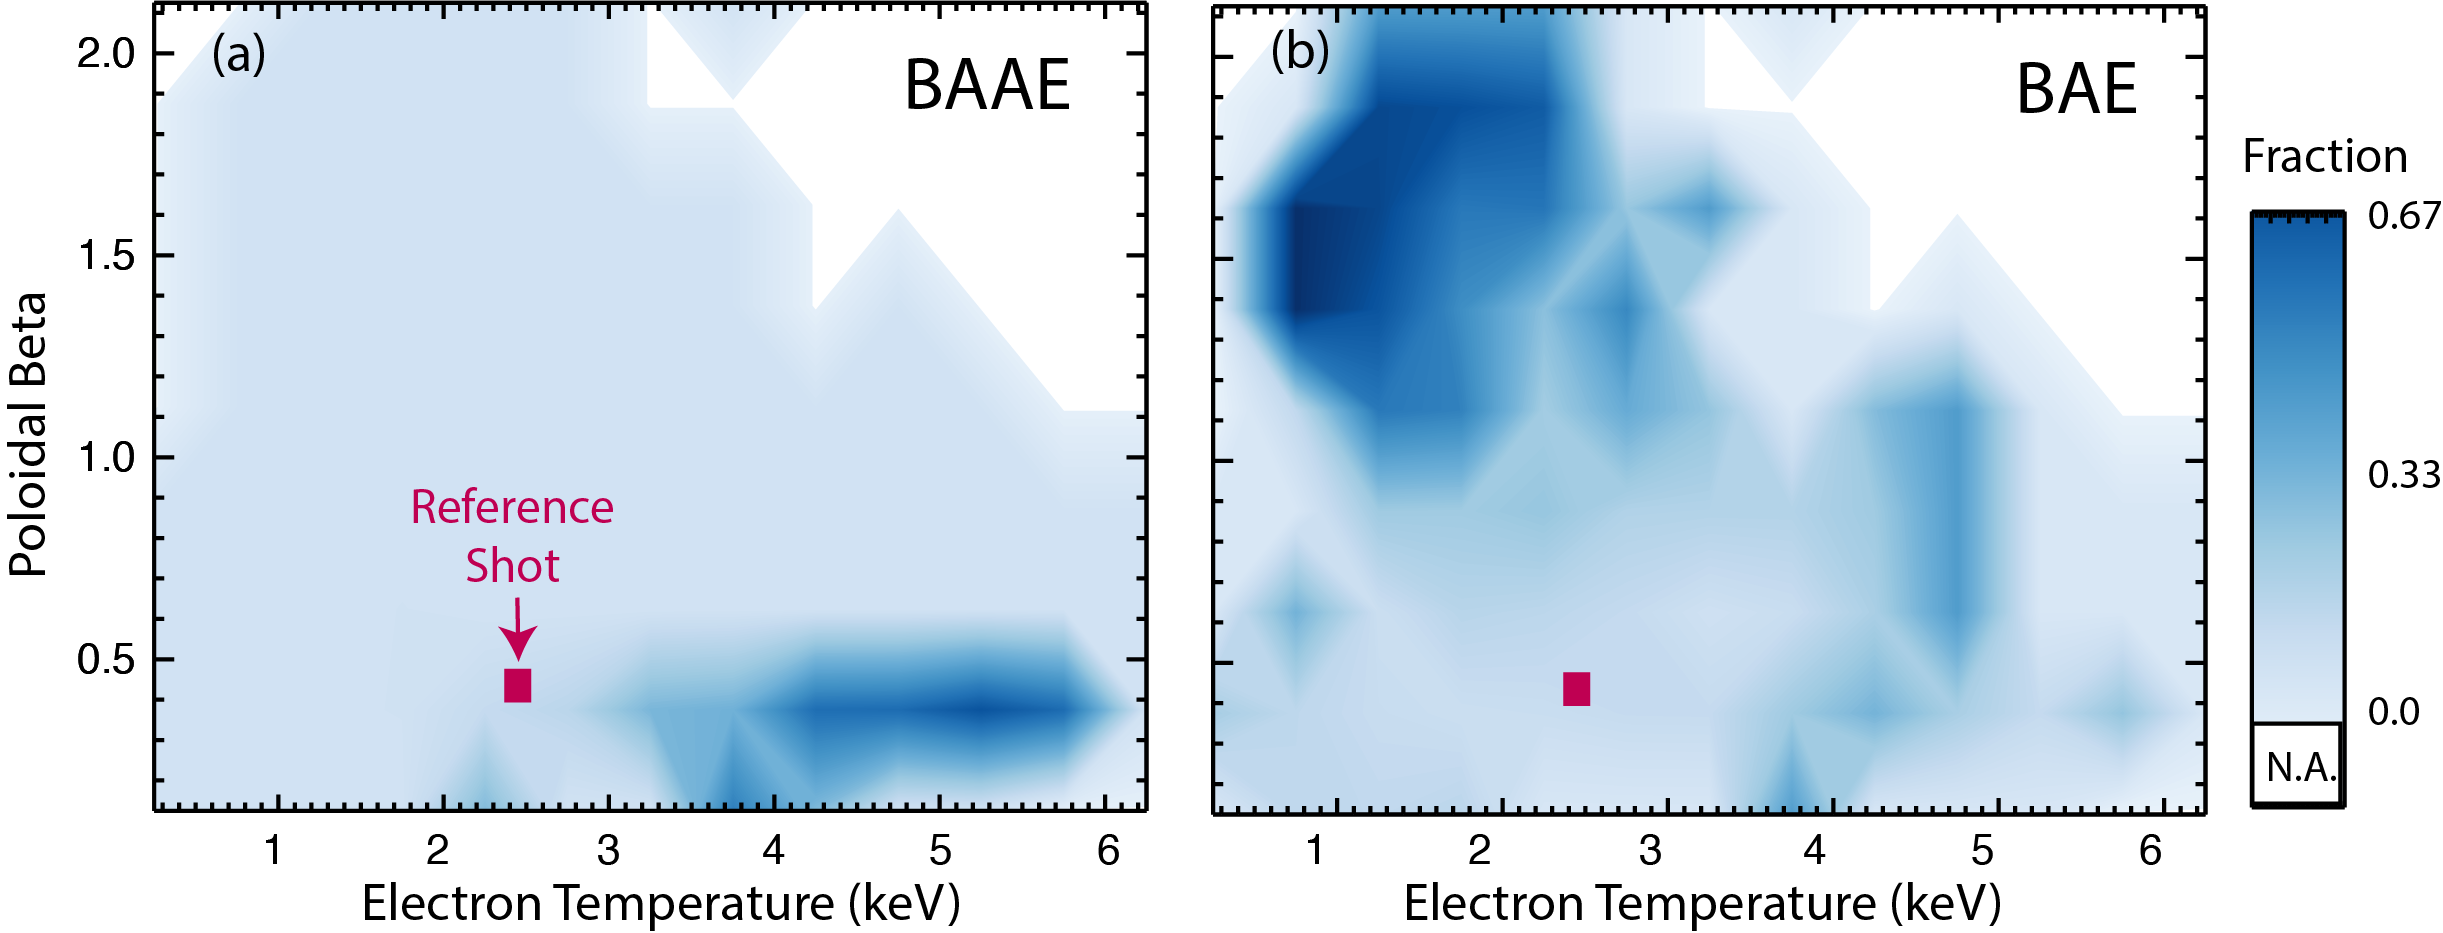 "Occurrence of (a) BAAE and (b) BAE vs. central $T_e$ and $\beta_p$ for a large database of DIII-D shots with early NBI. The shading indicates the fraction of entries with BAE or BAAE activity per temperature-beta bin. The ""reference shot"" is shown in Fig. 1a. White regions indicate a portion of parameter space without entries."